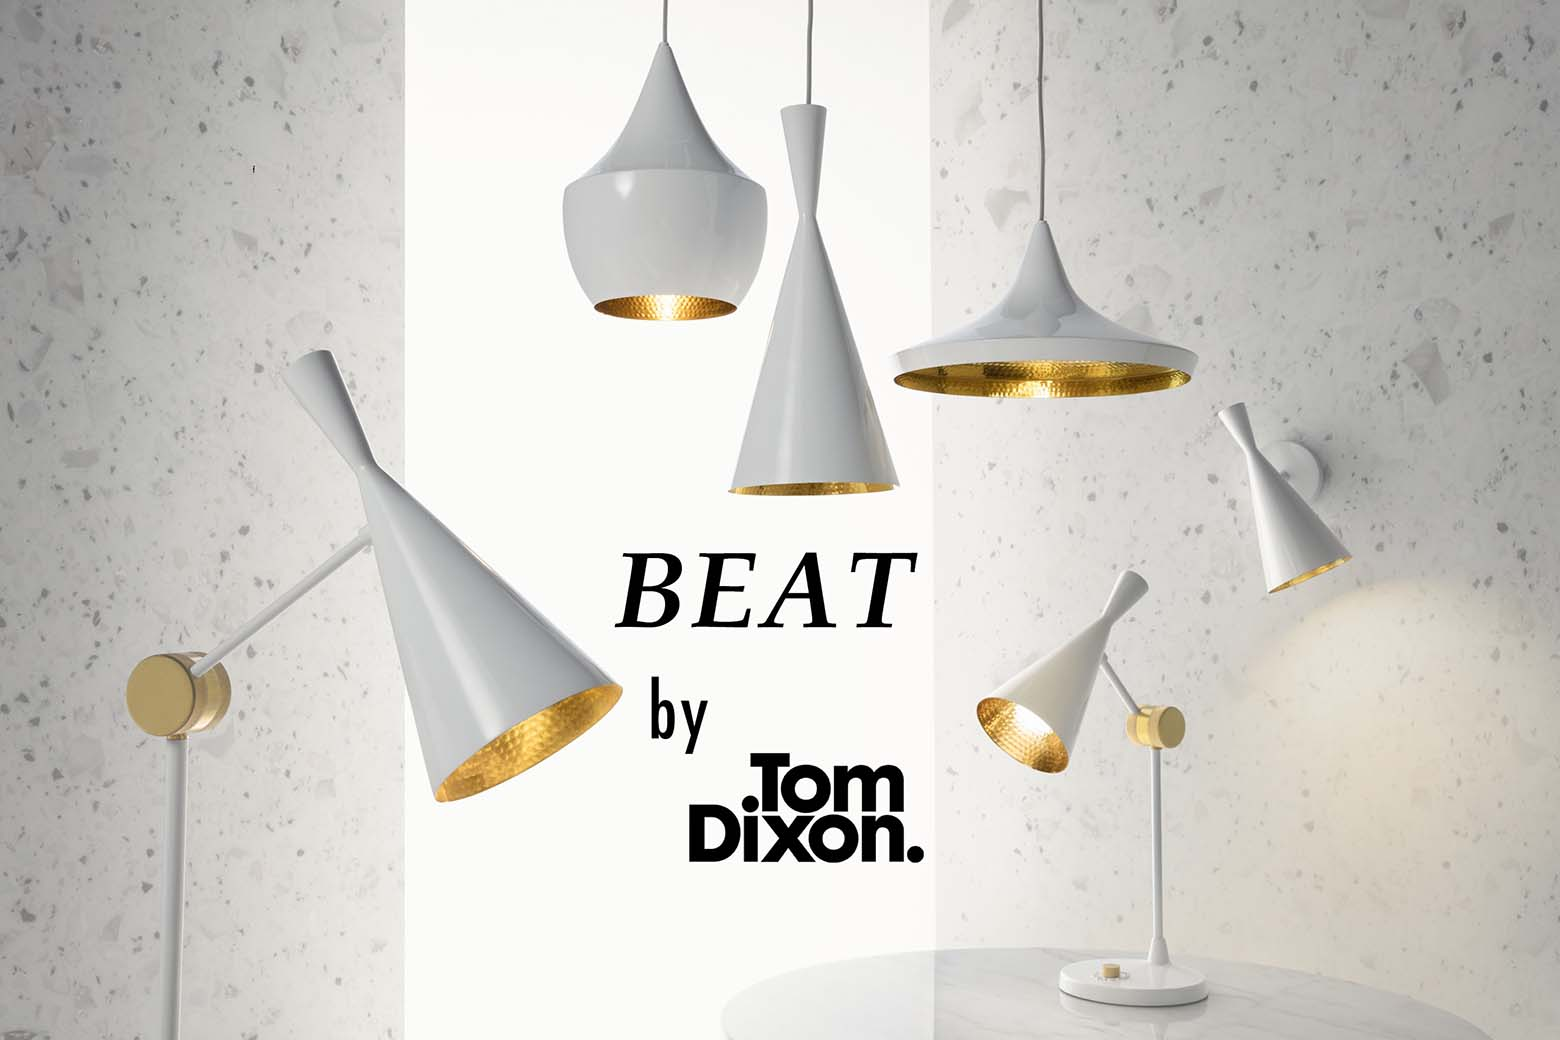 Tom Dixon Lima - Luminarias Beat de Tom Dixon